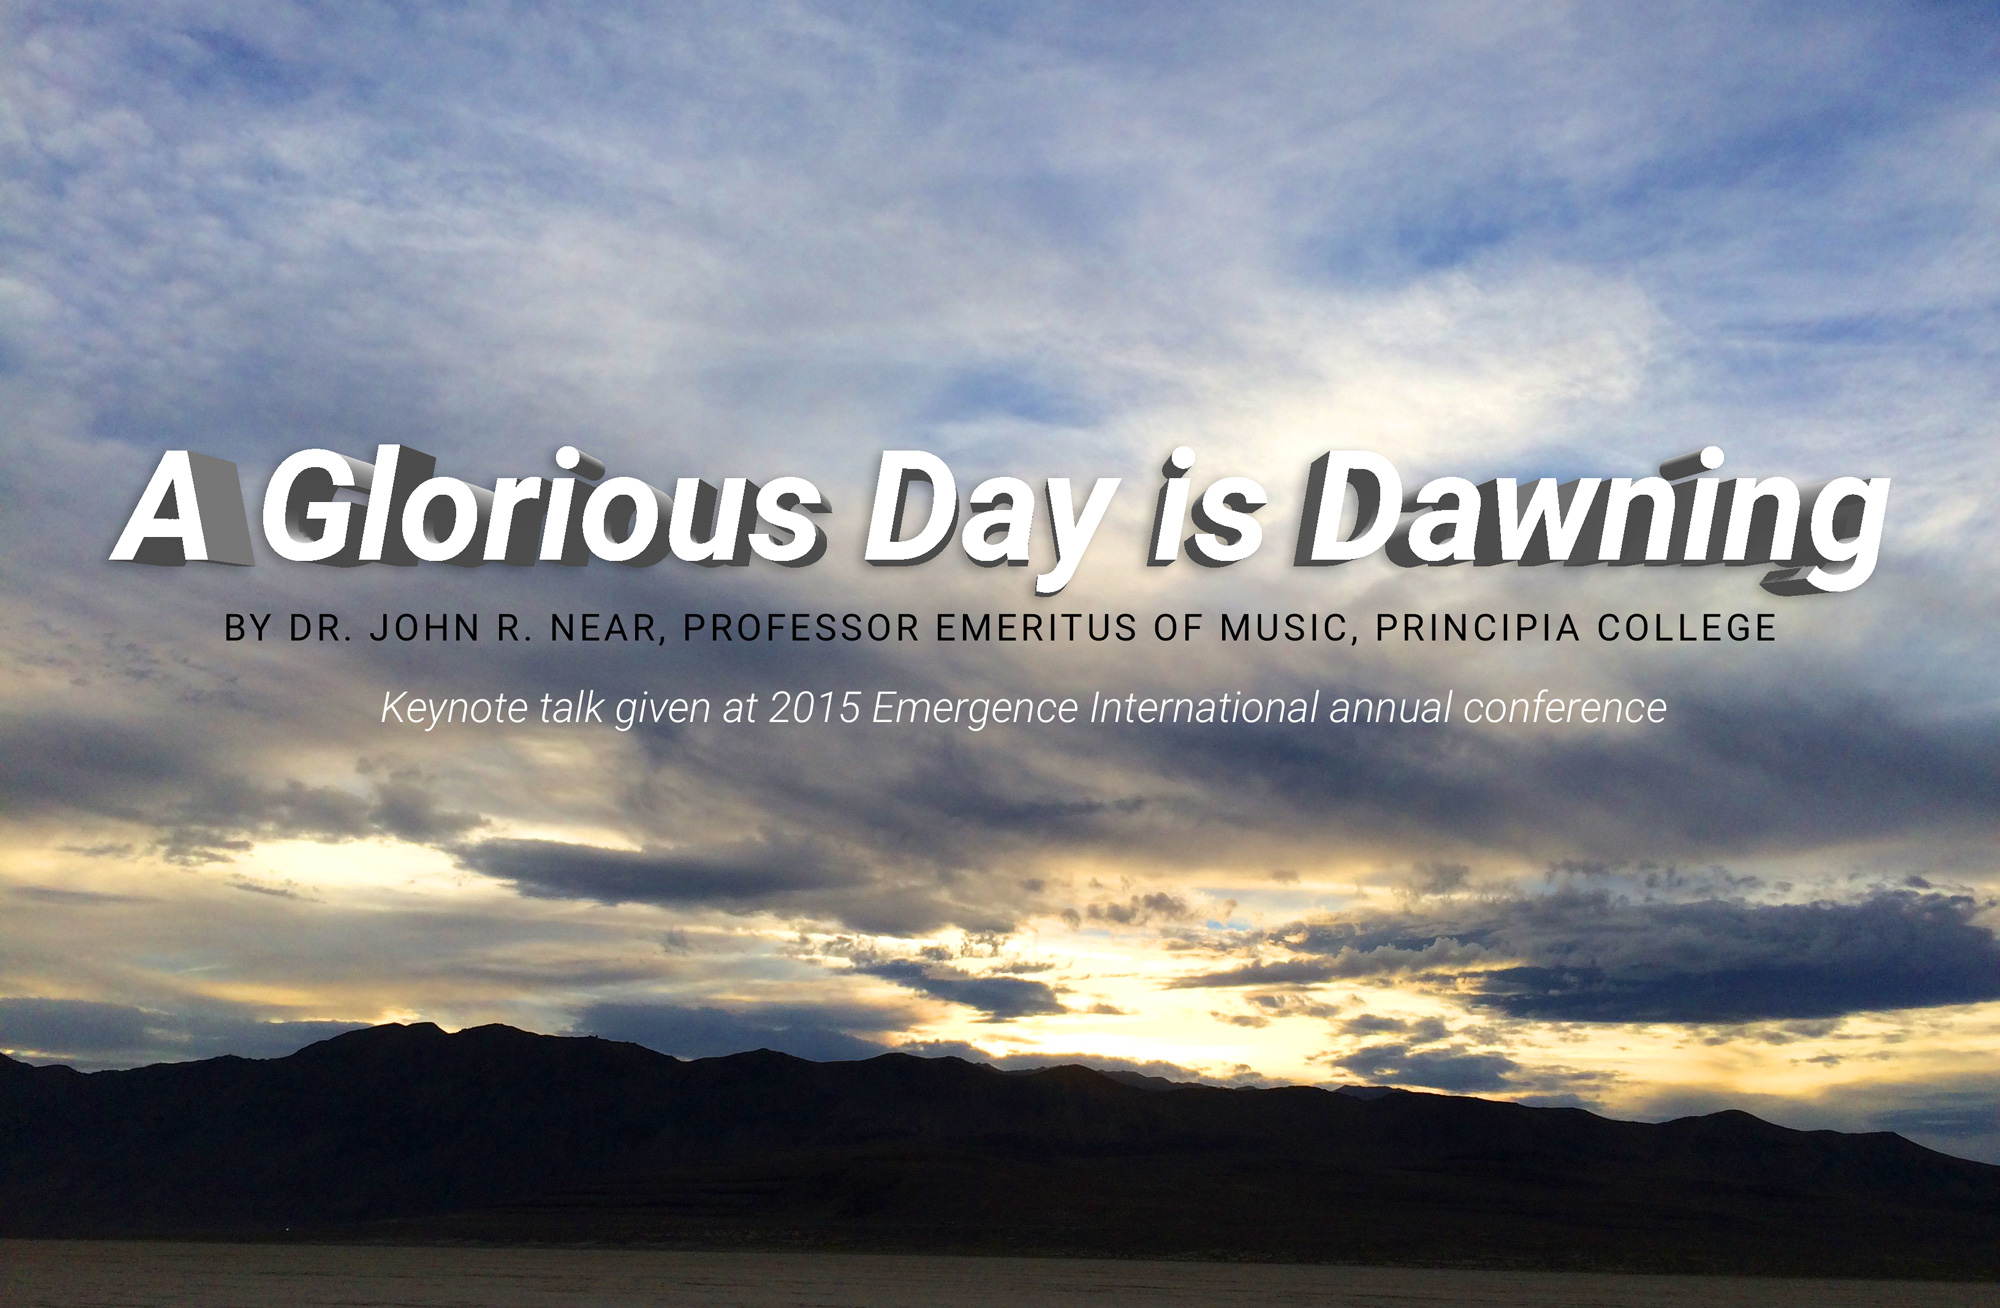 A Glorious Day is Dawning